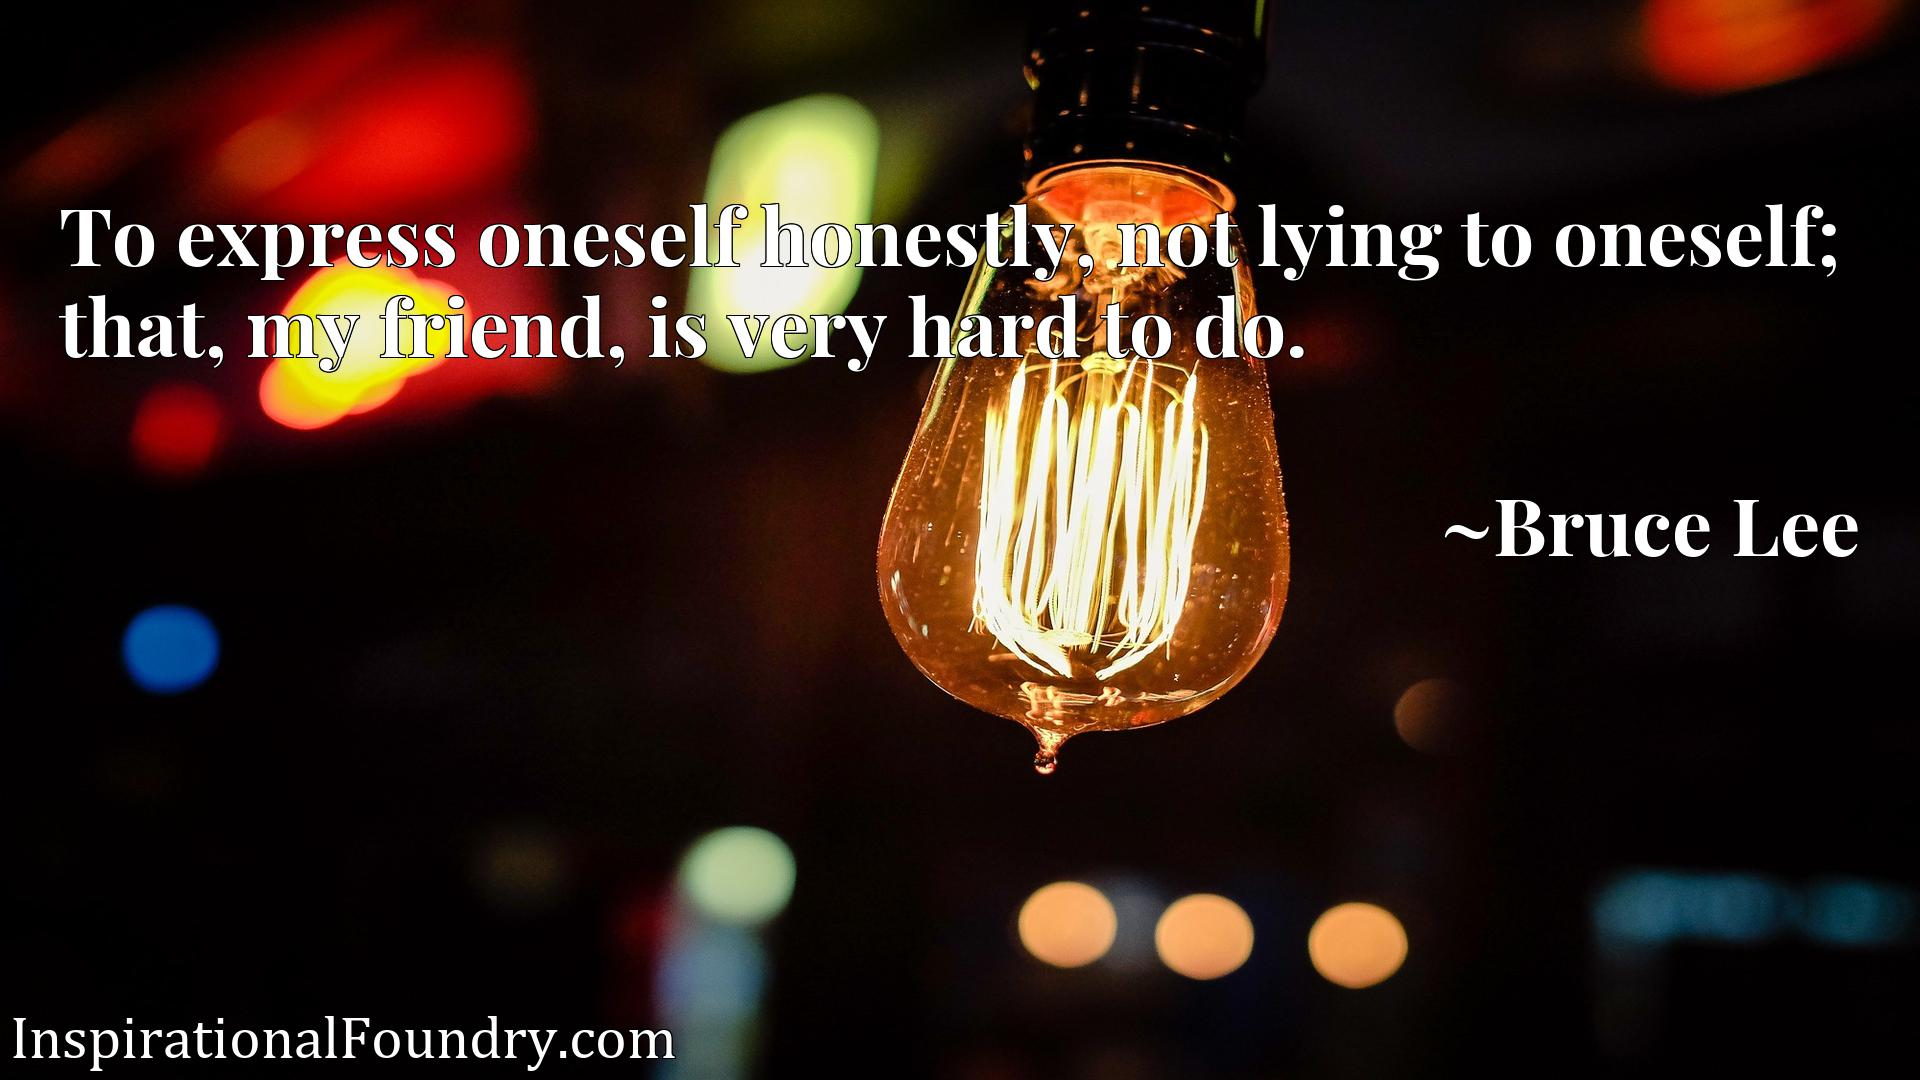 To express oneself honestly, not lying to oneself; that, my friend, is very hard to do.